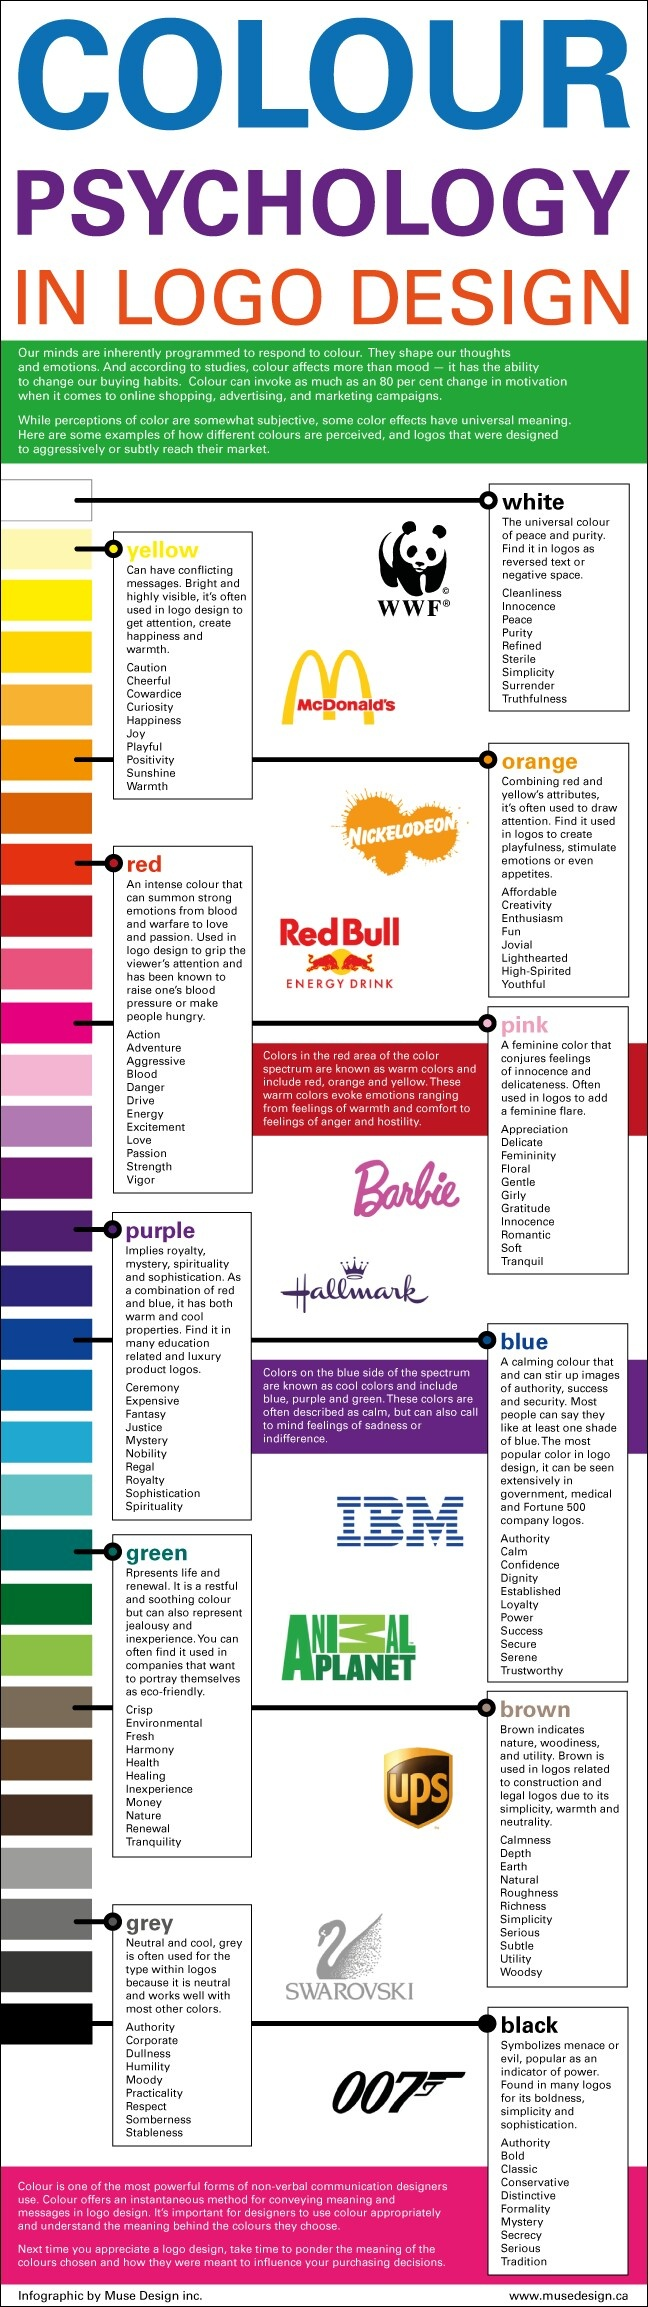 Logo color branding, cool infographic for designers! #logo #design #color #brand